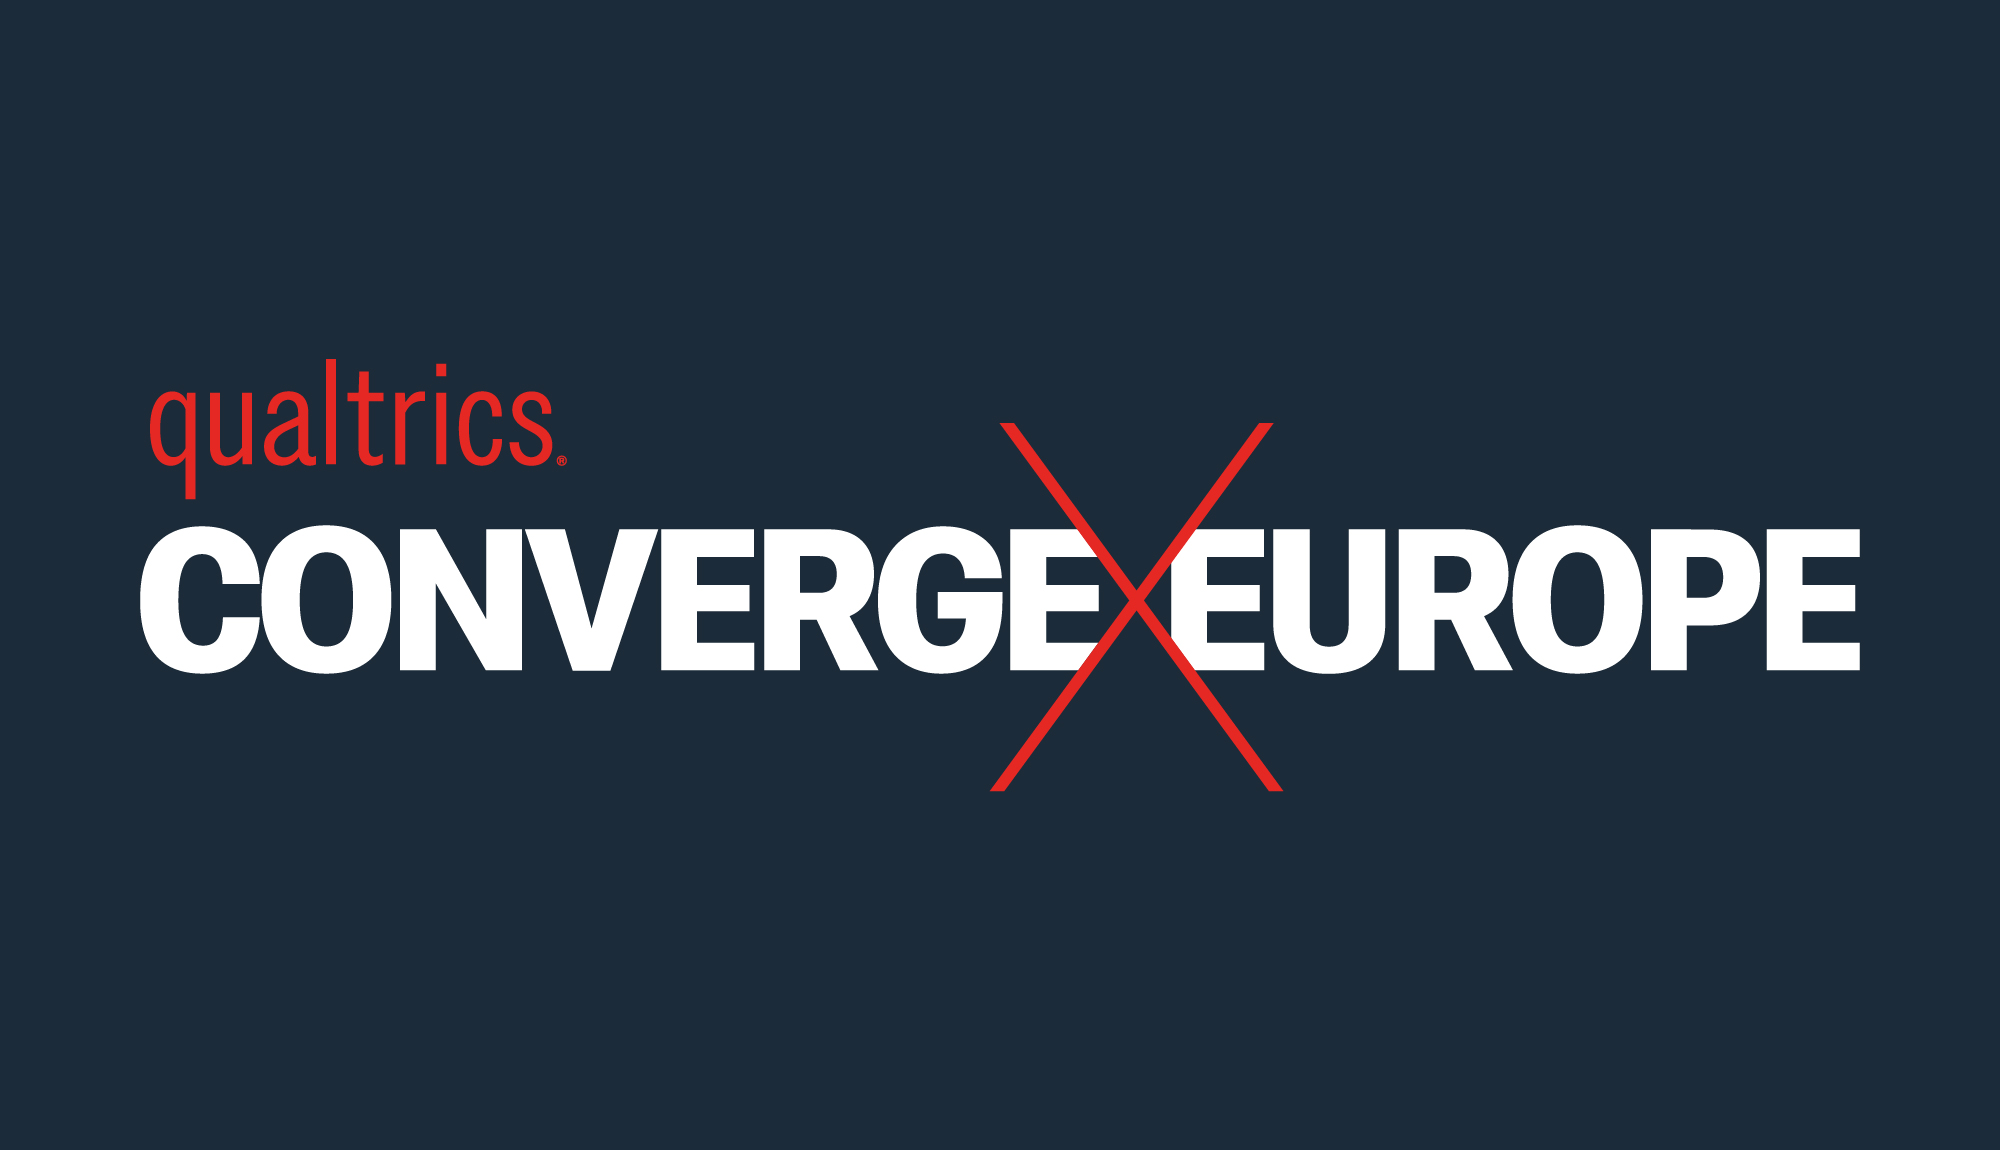 Cover image: Qualtrics Converge Europe Event